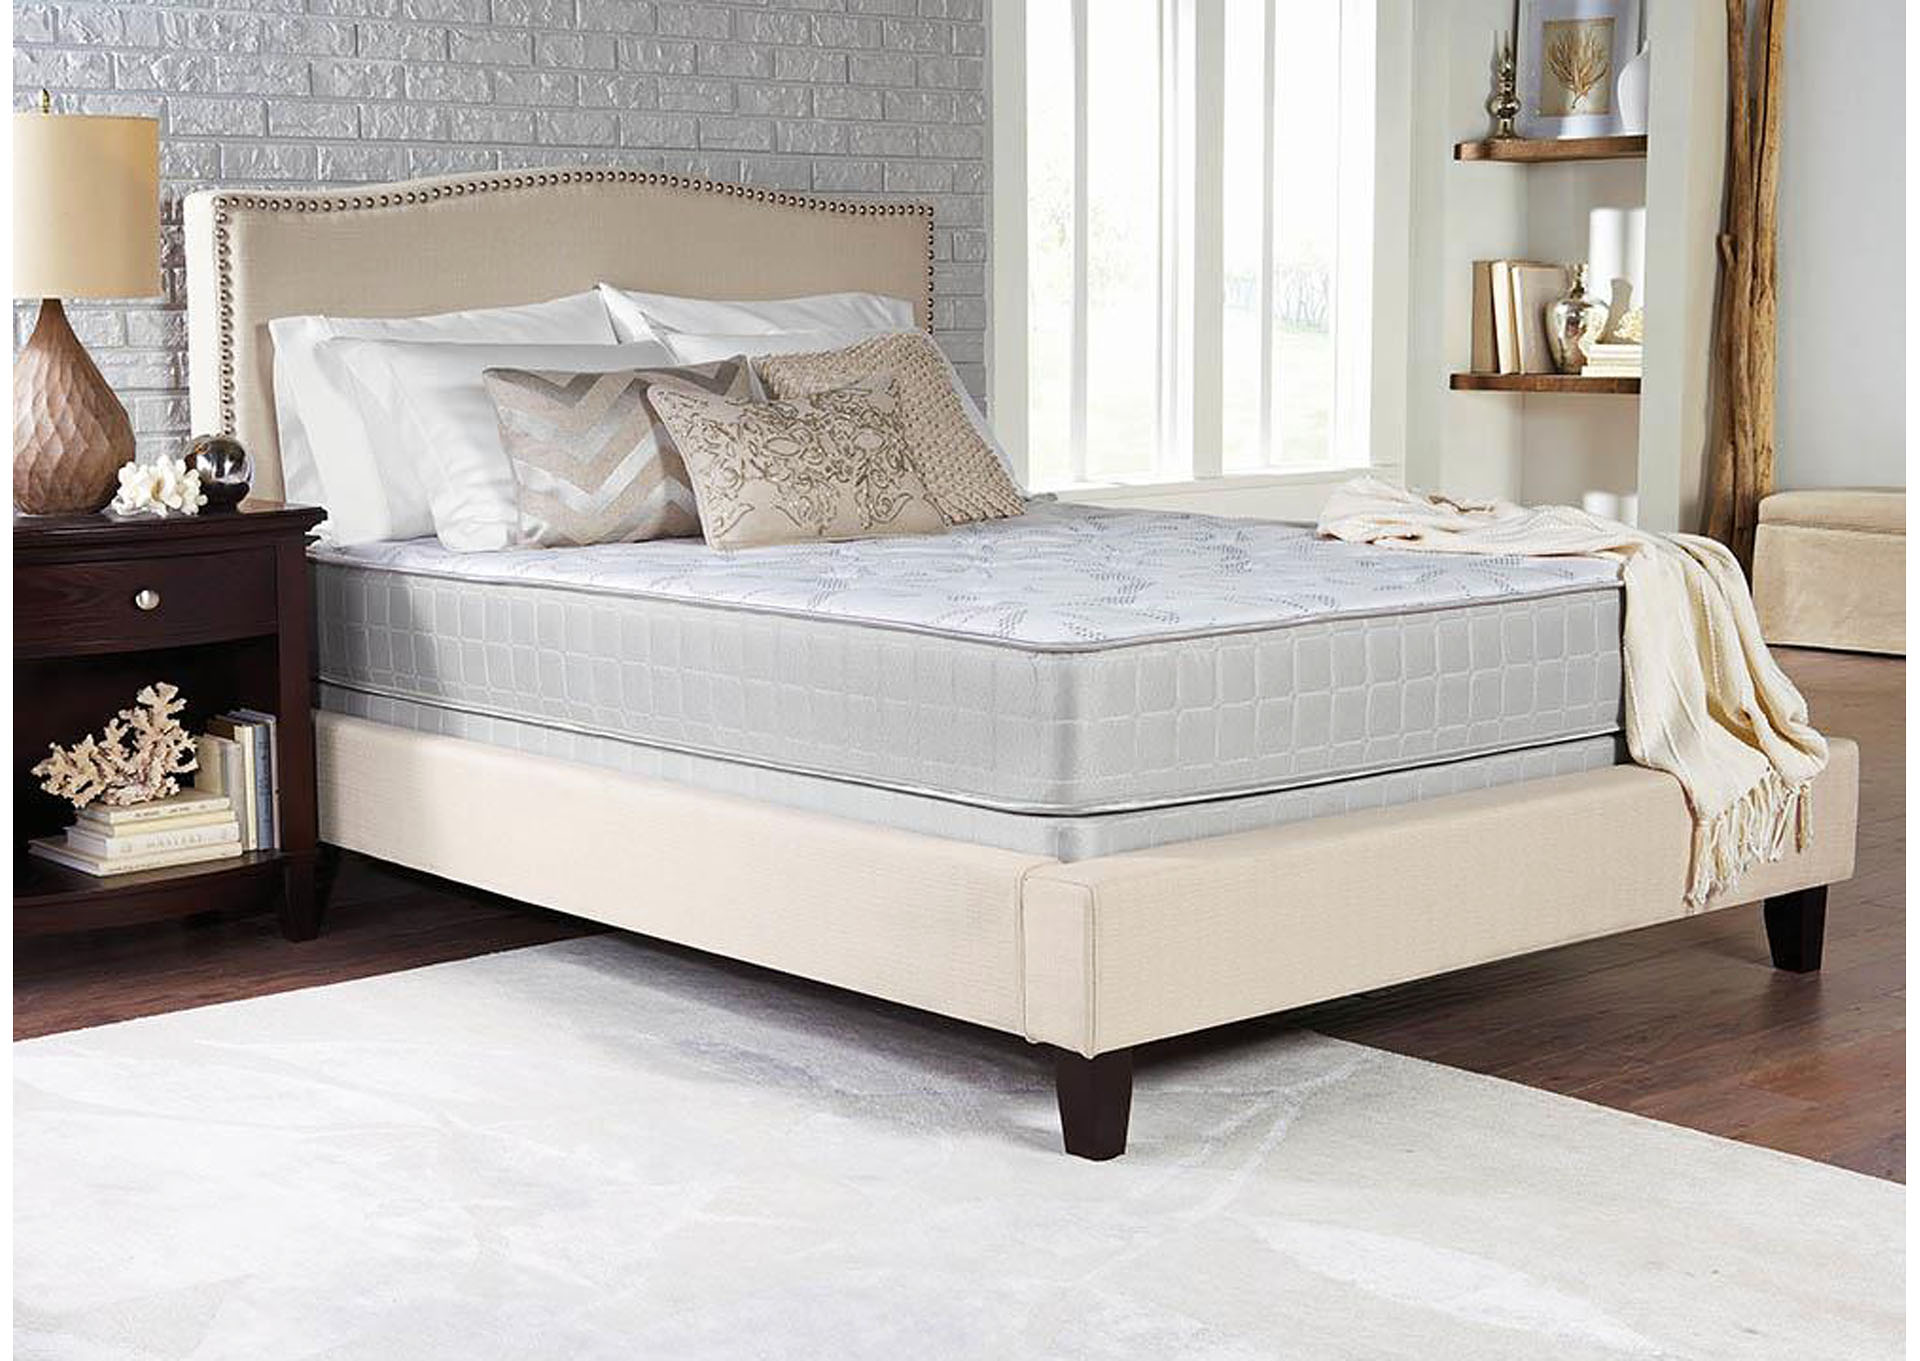 Crystal Cove II Plush Full Mattress,Coaster Furniture